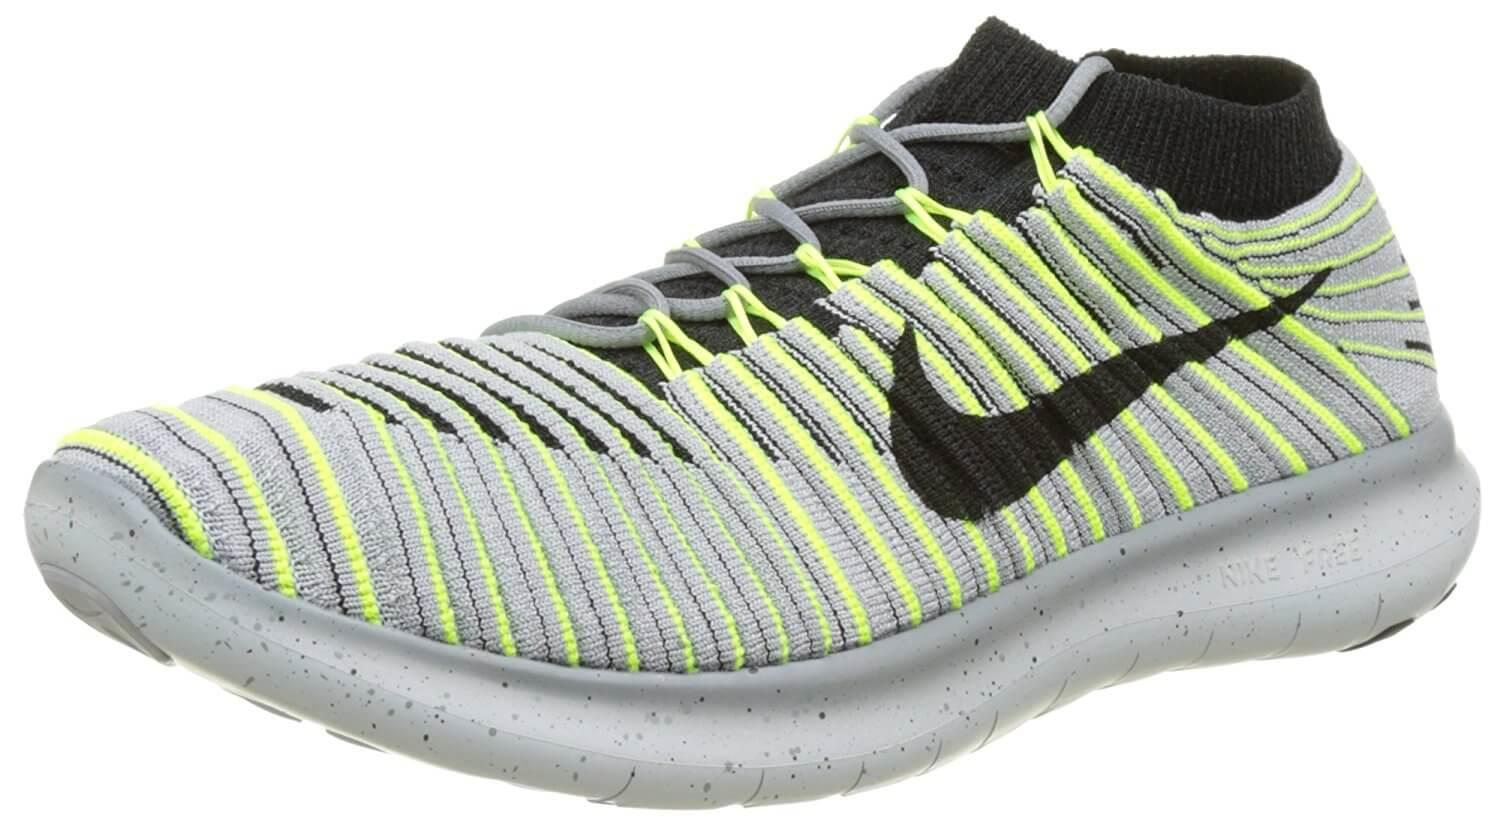 Nike Free Motion Flyknit Running Shoes